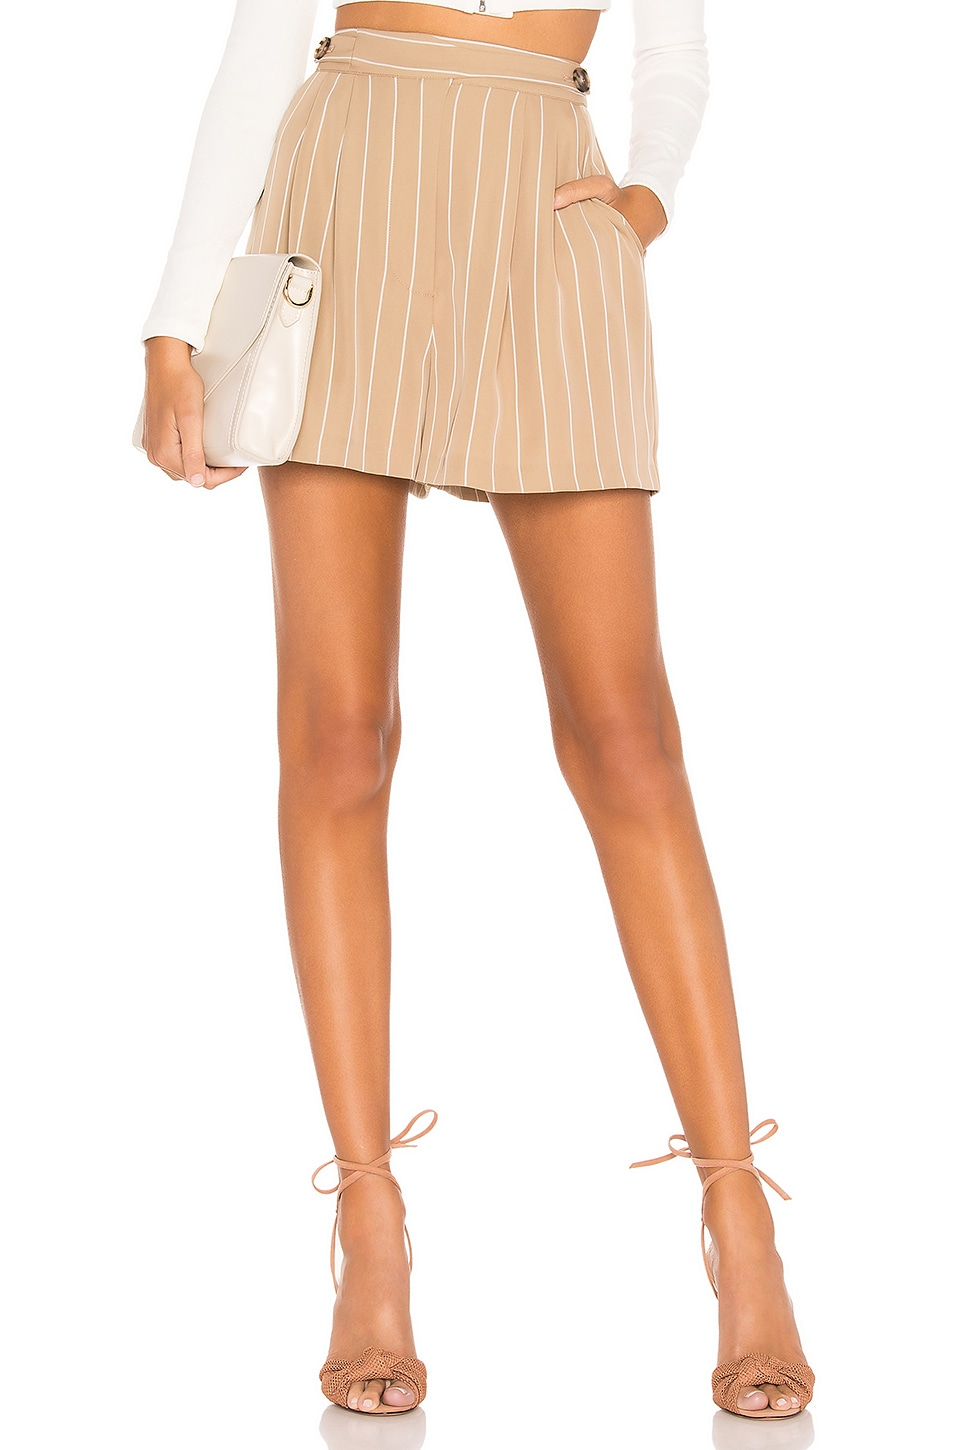 L'Academie The Remy Short in Beige & White